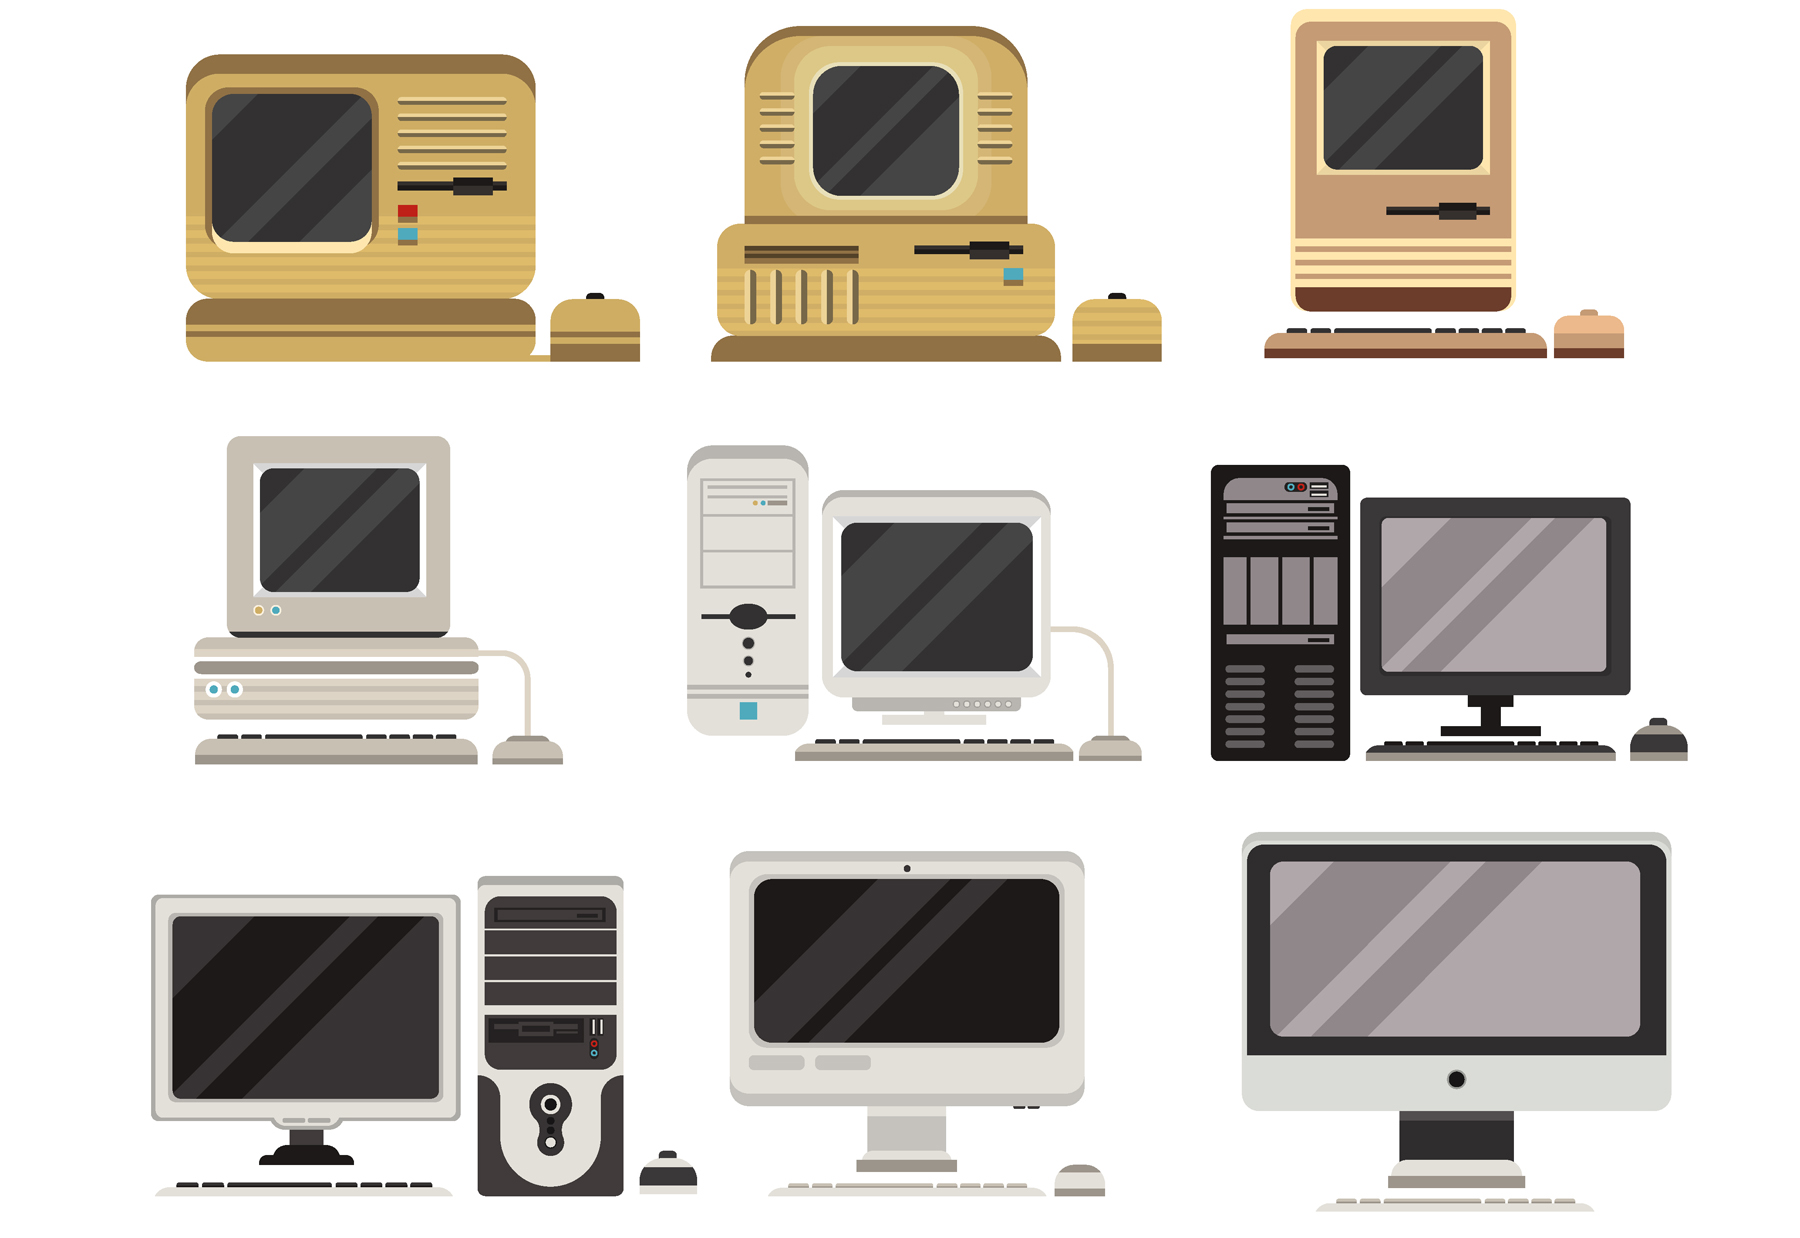 Illustrated computers over time